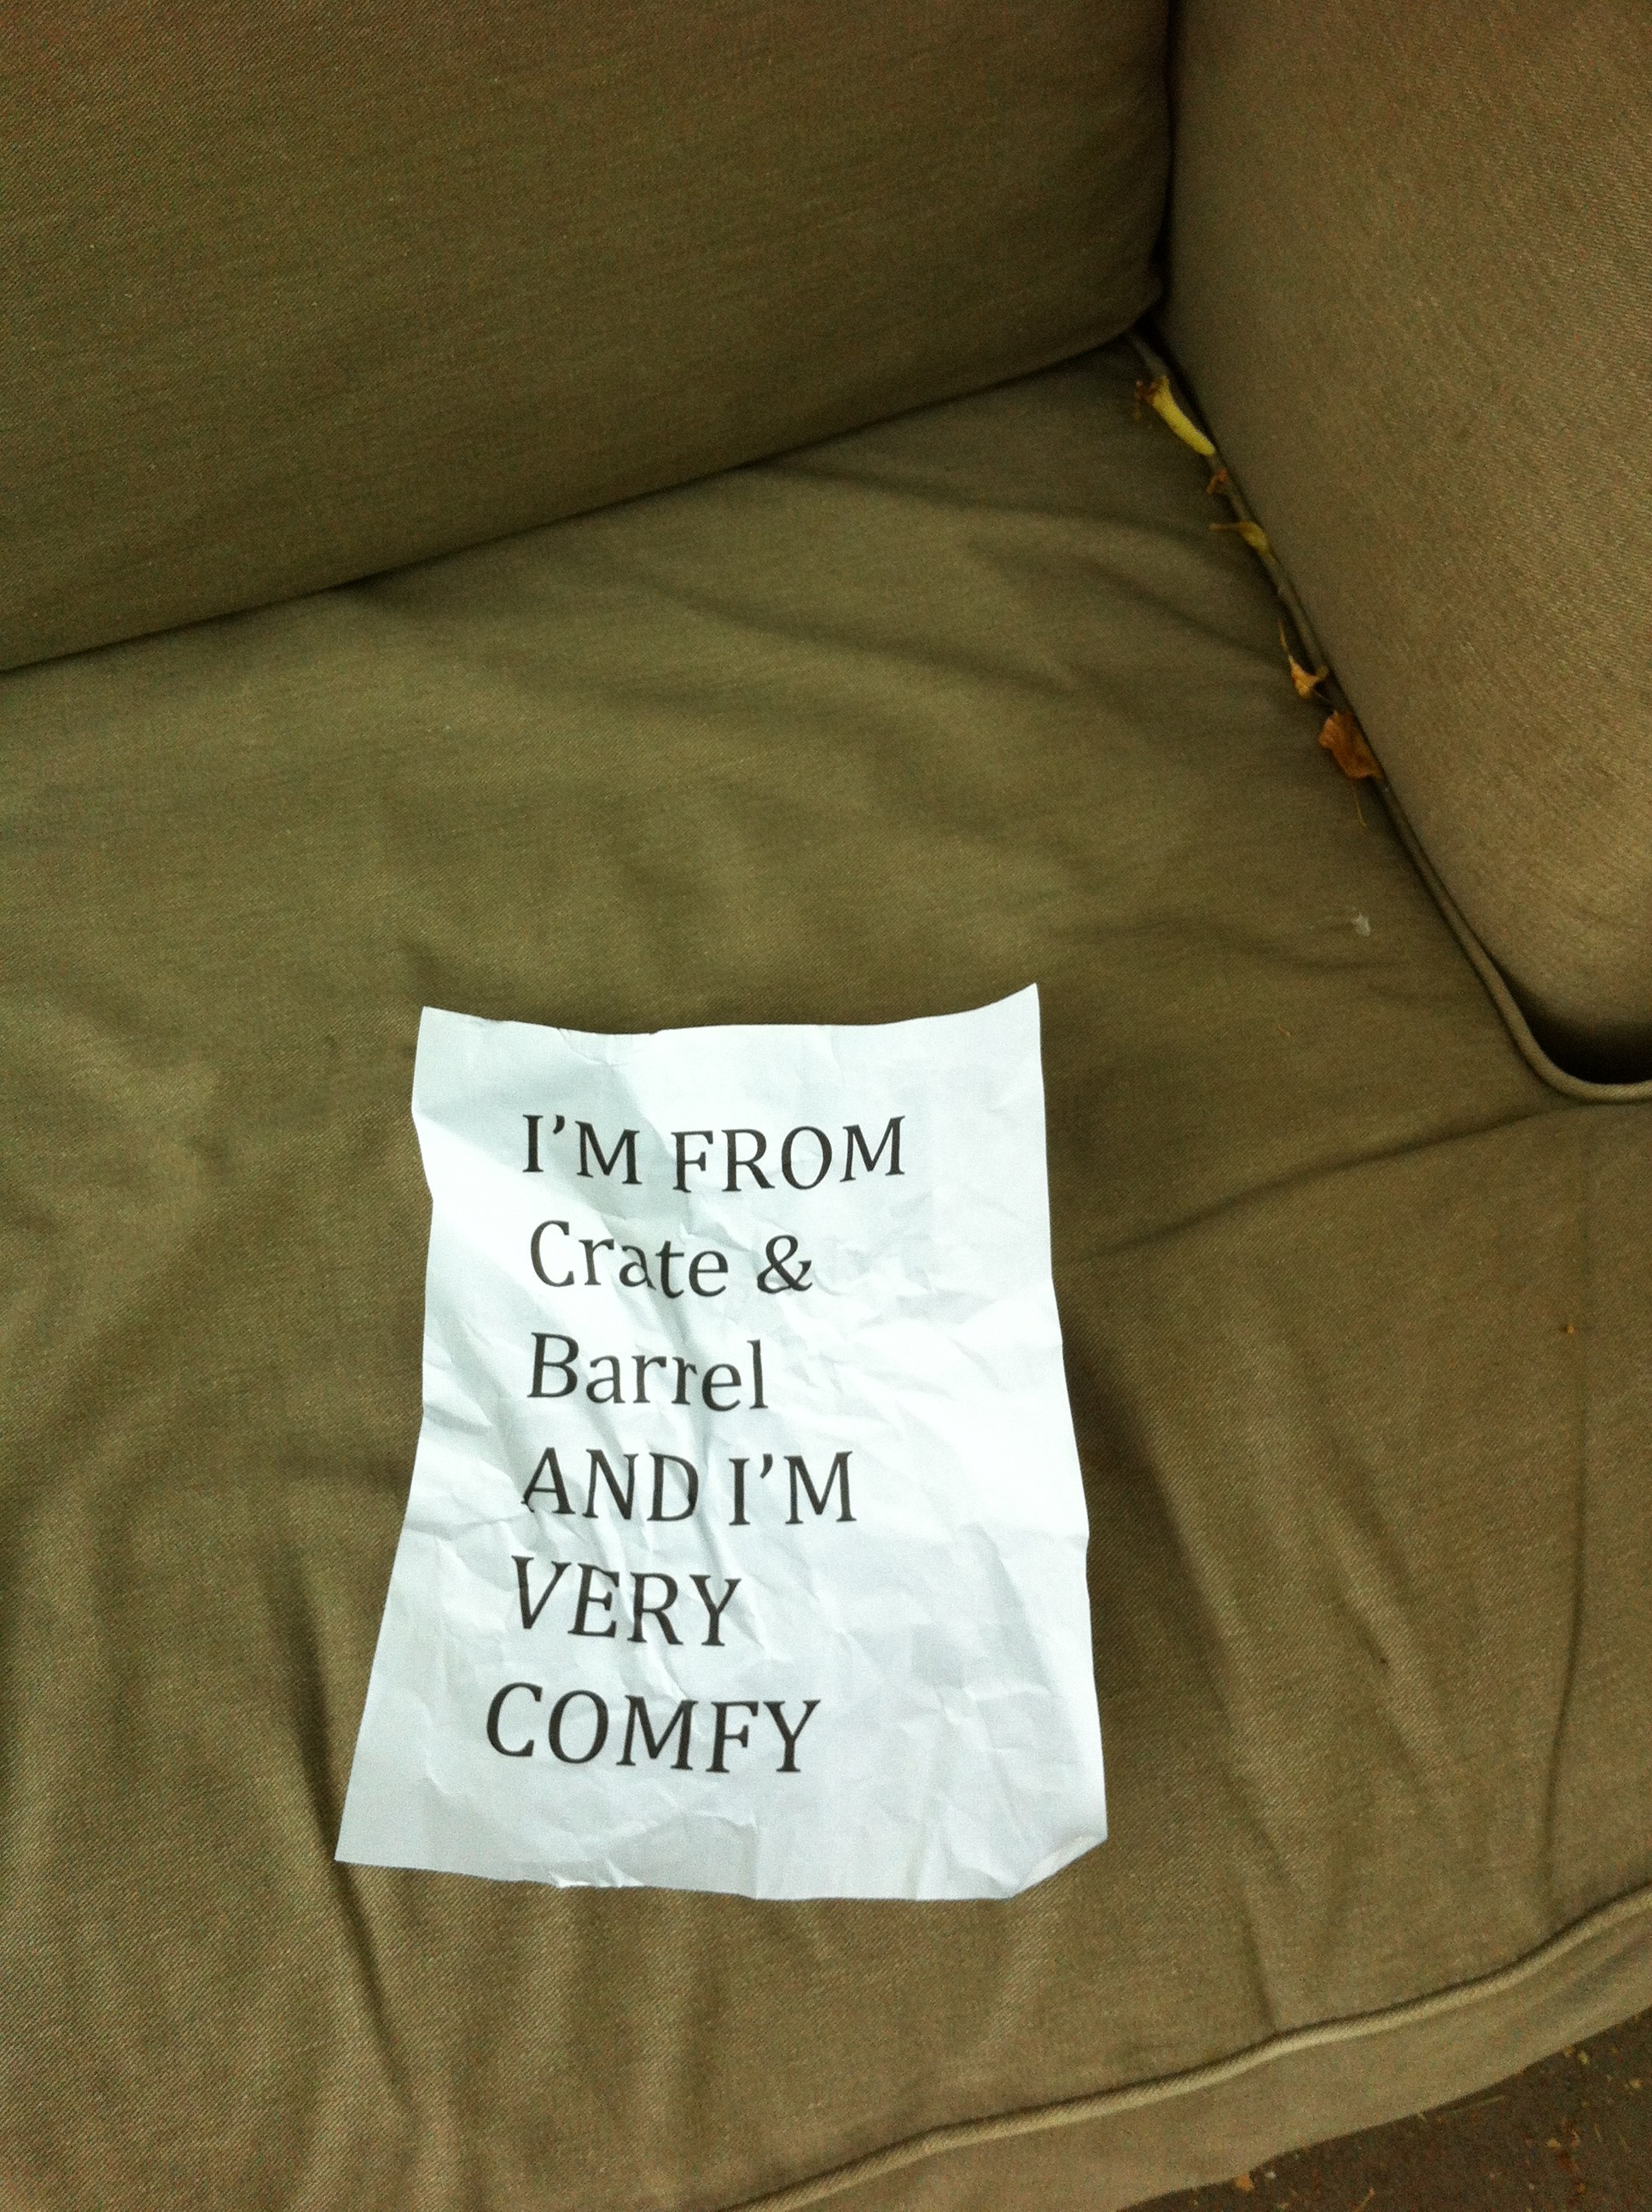 A pic of a sign in the seat of the Crate & Barrel chair